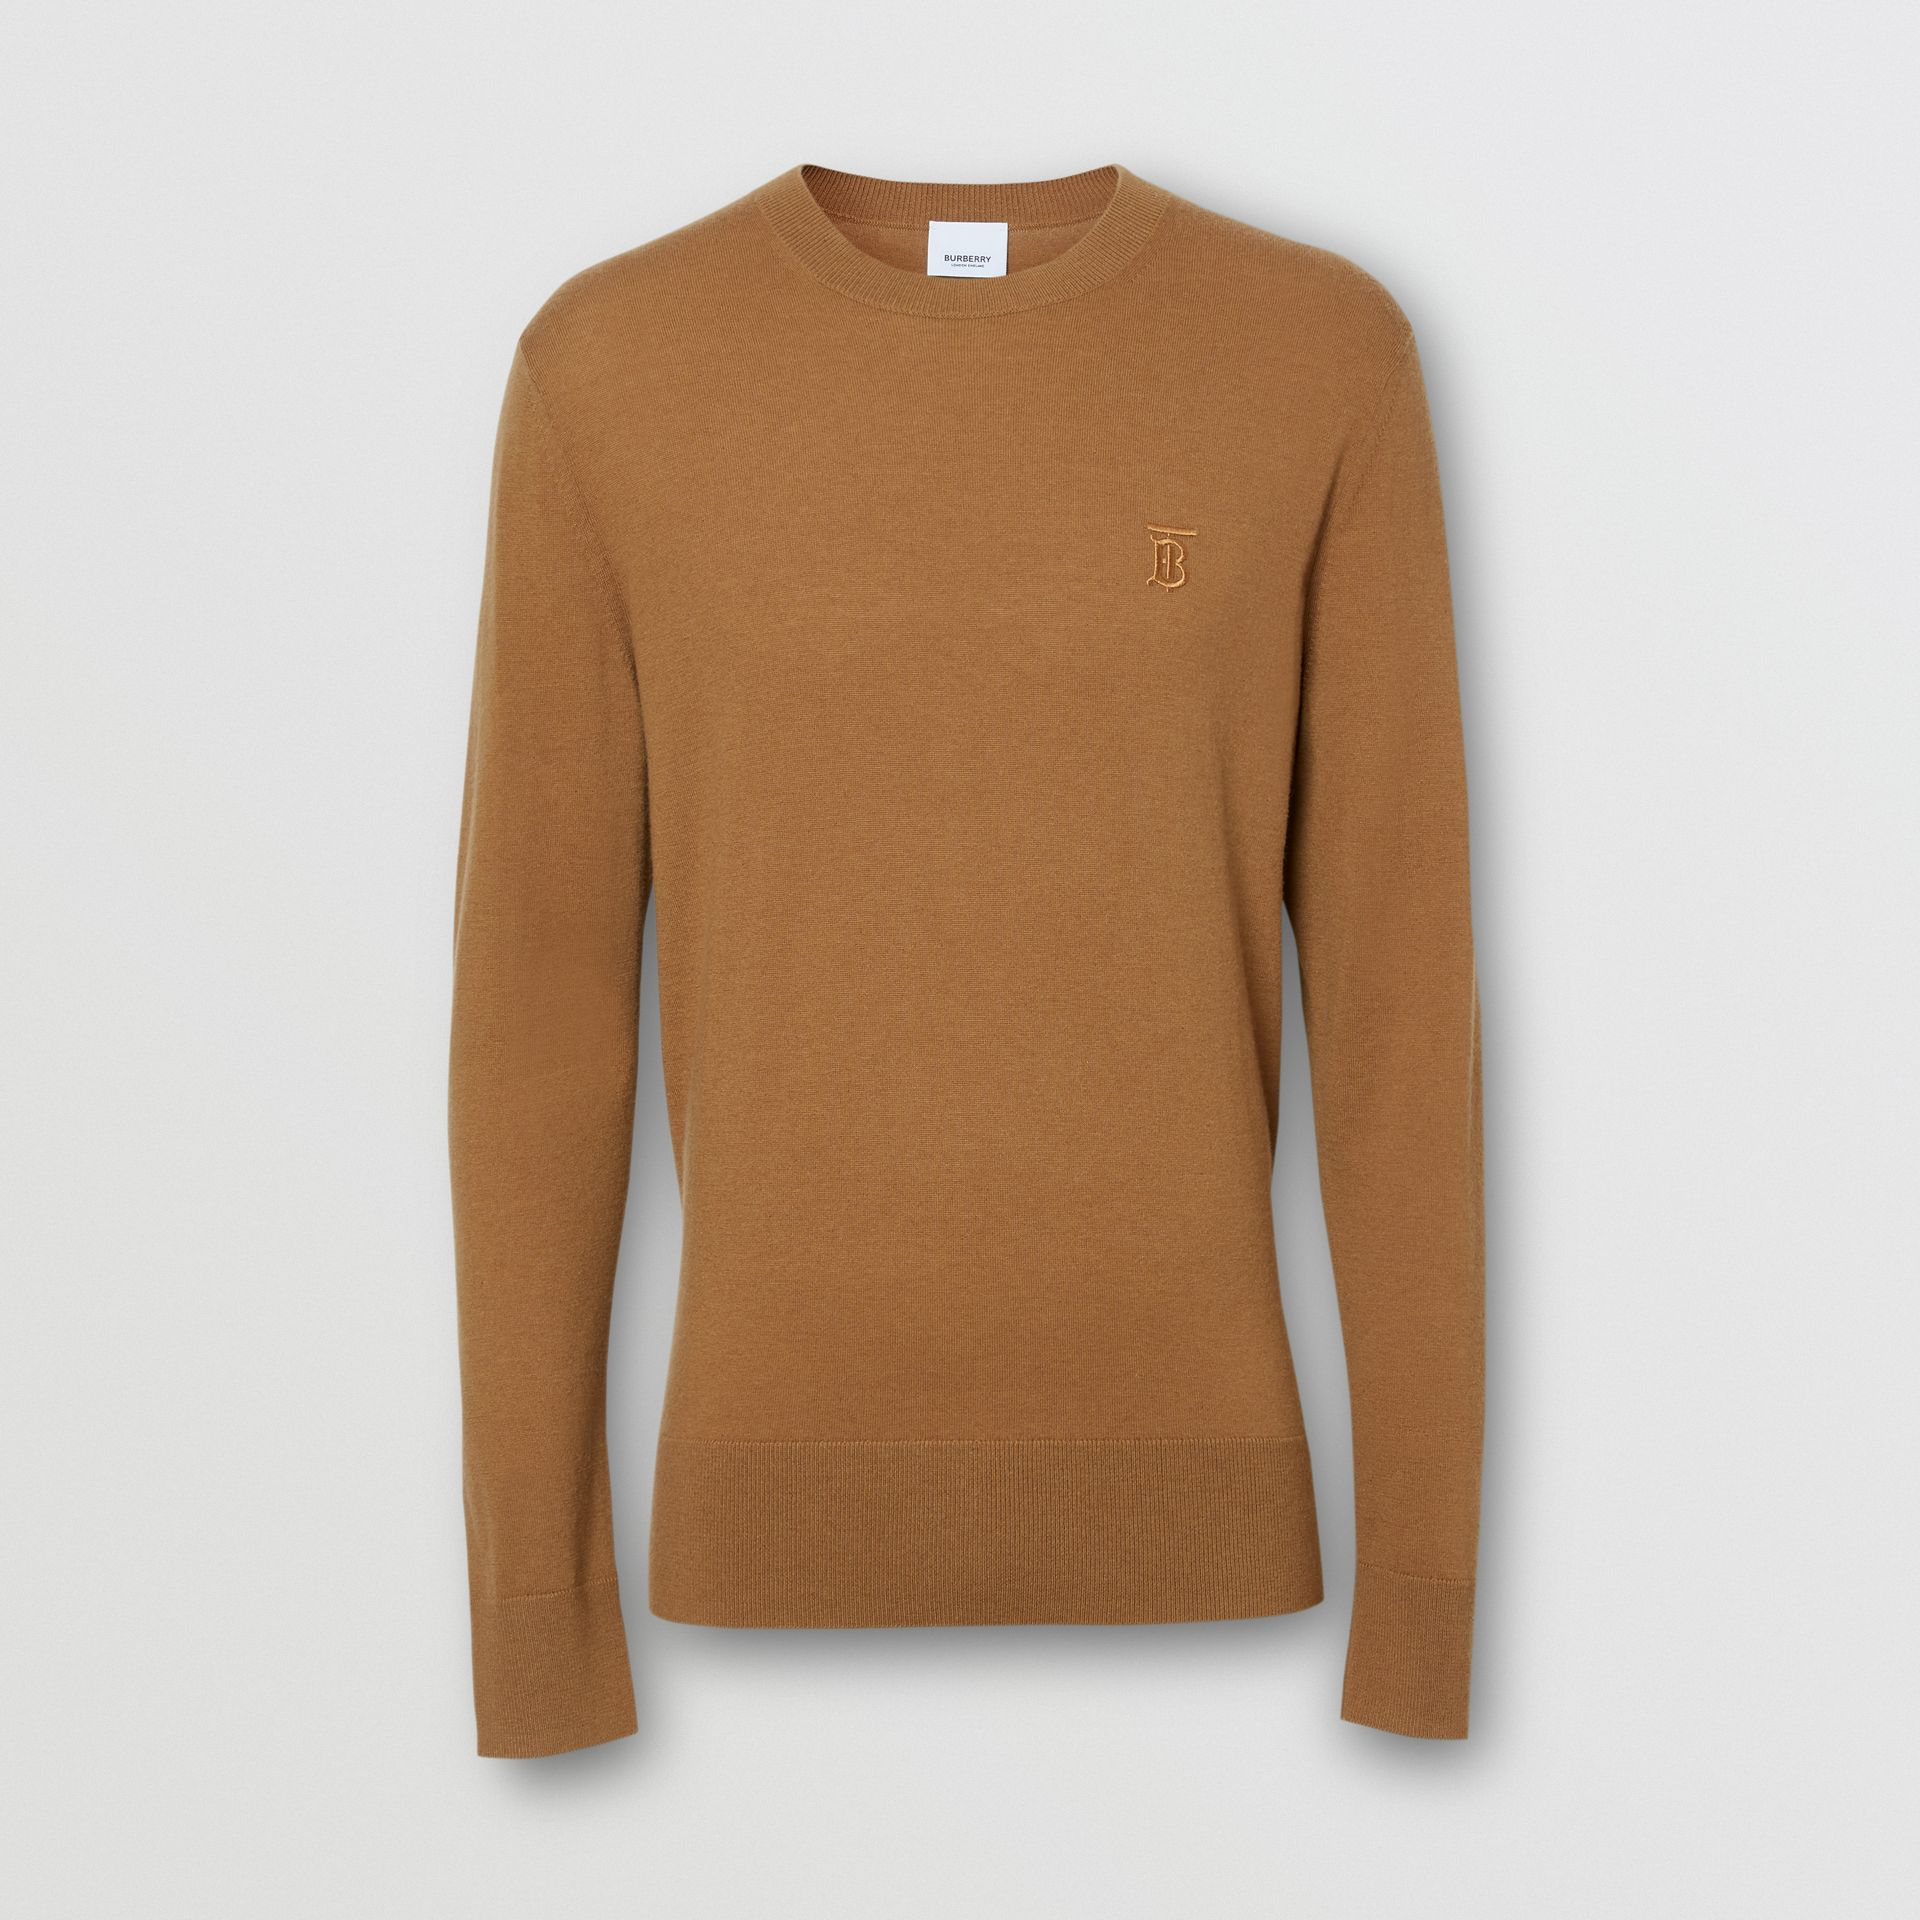 Monogram Motif Cashmere Sweater in Maple - Men | Burberry - gallery image 3